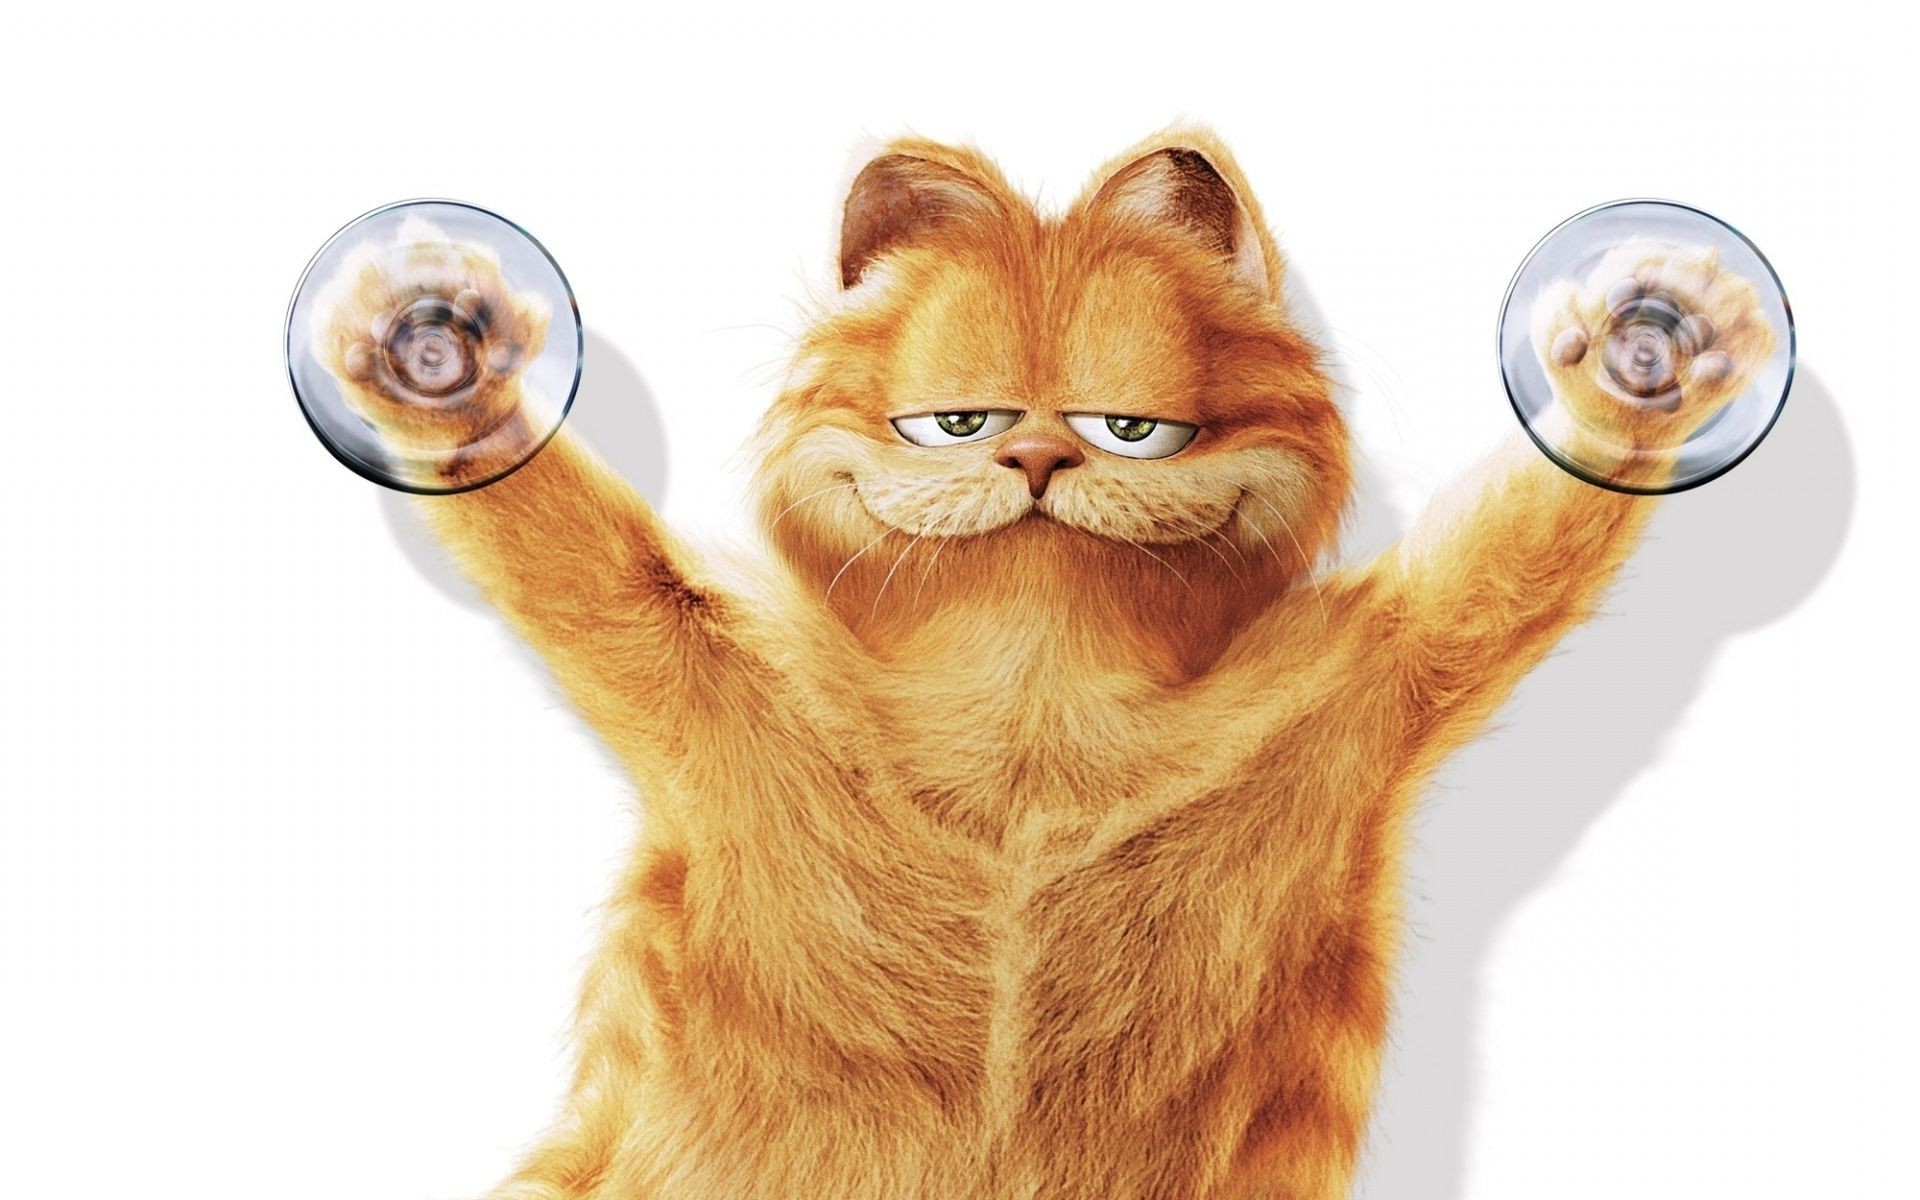 Belay background garfield suction cup cat android - Garfield wallpapers for mobile ...